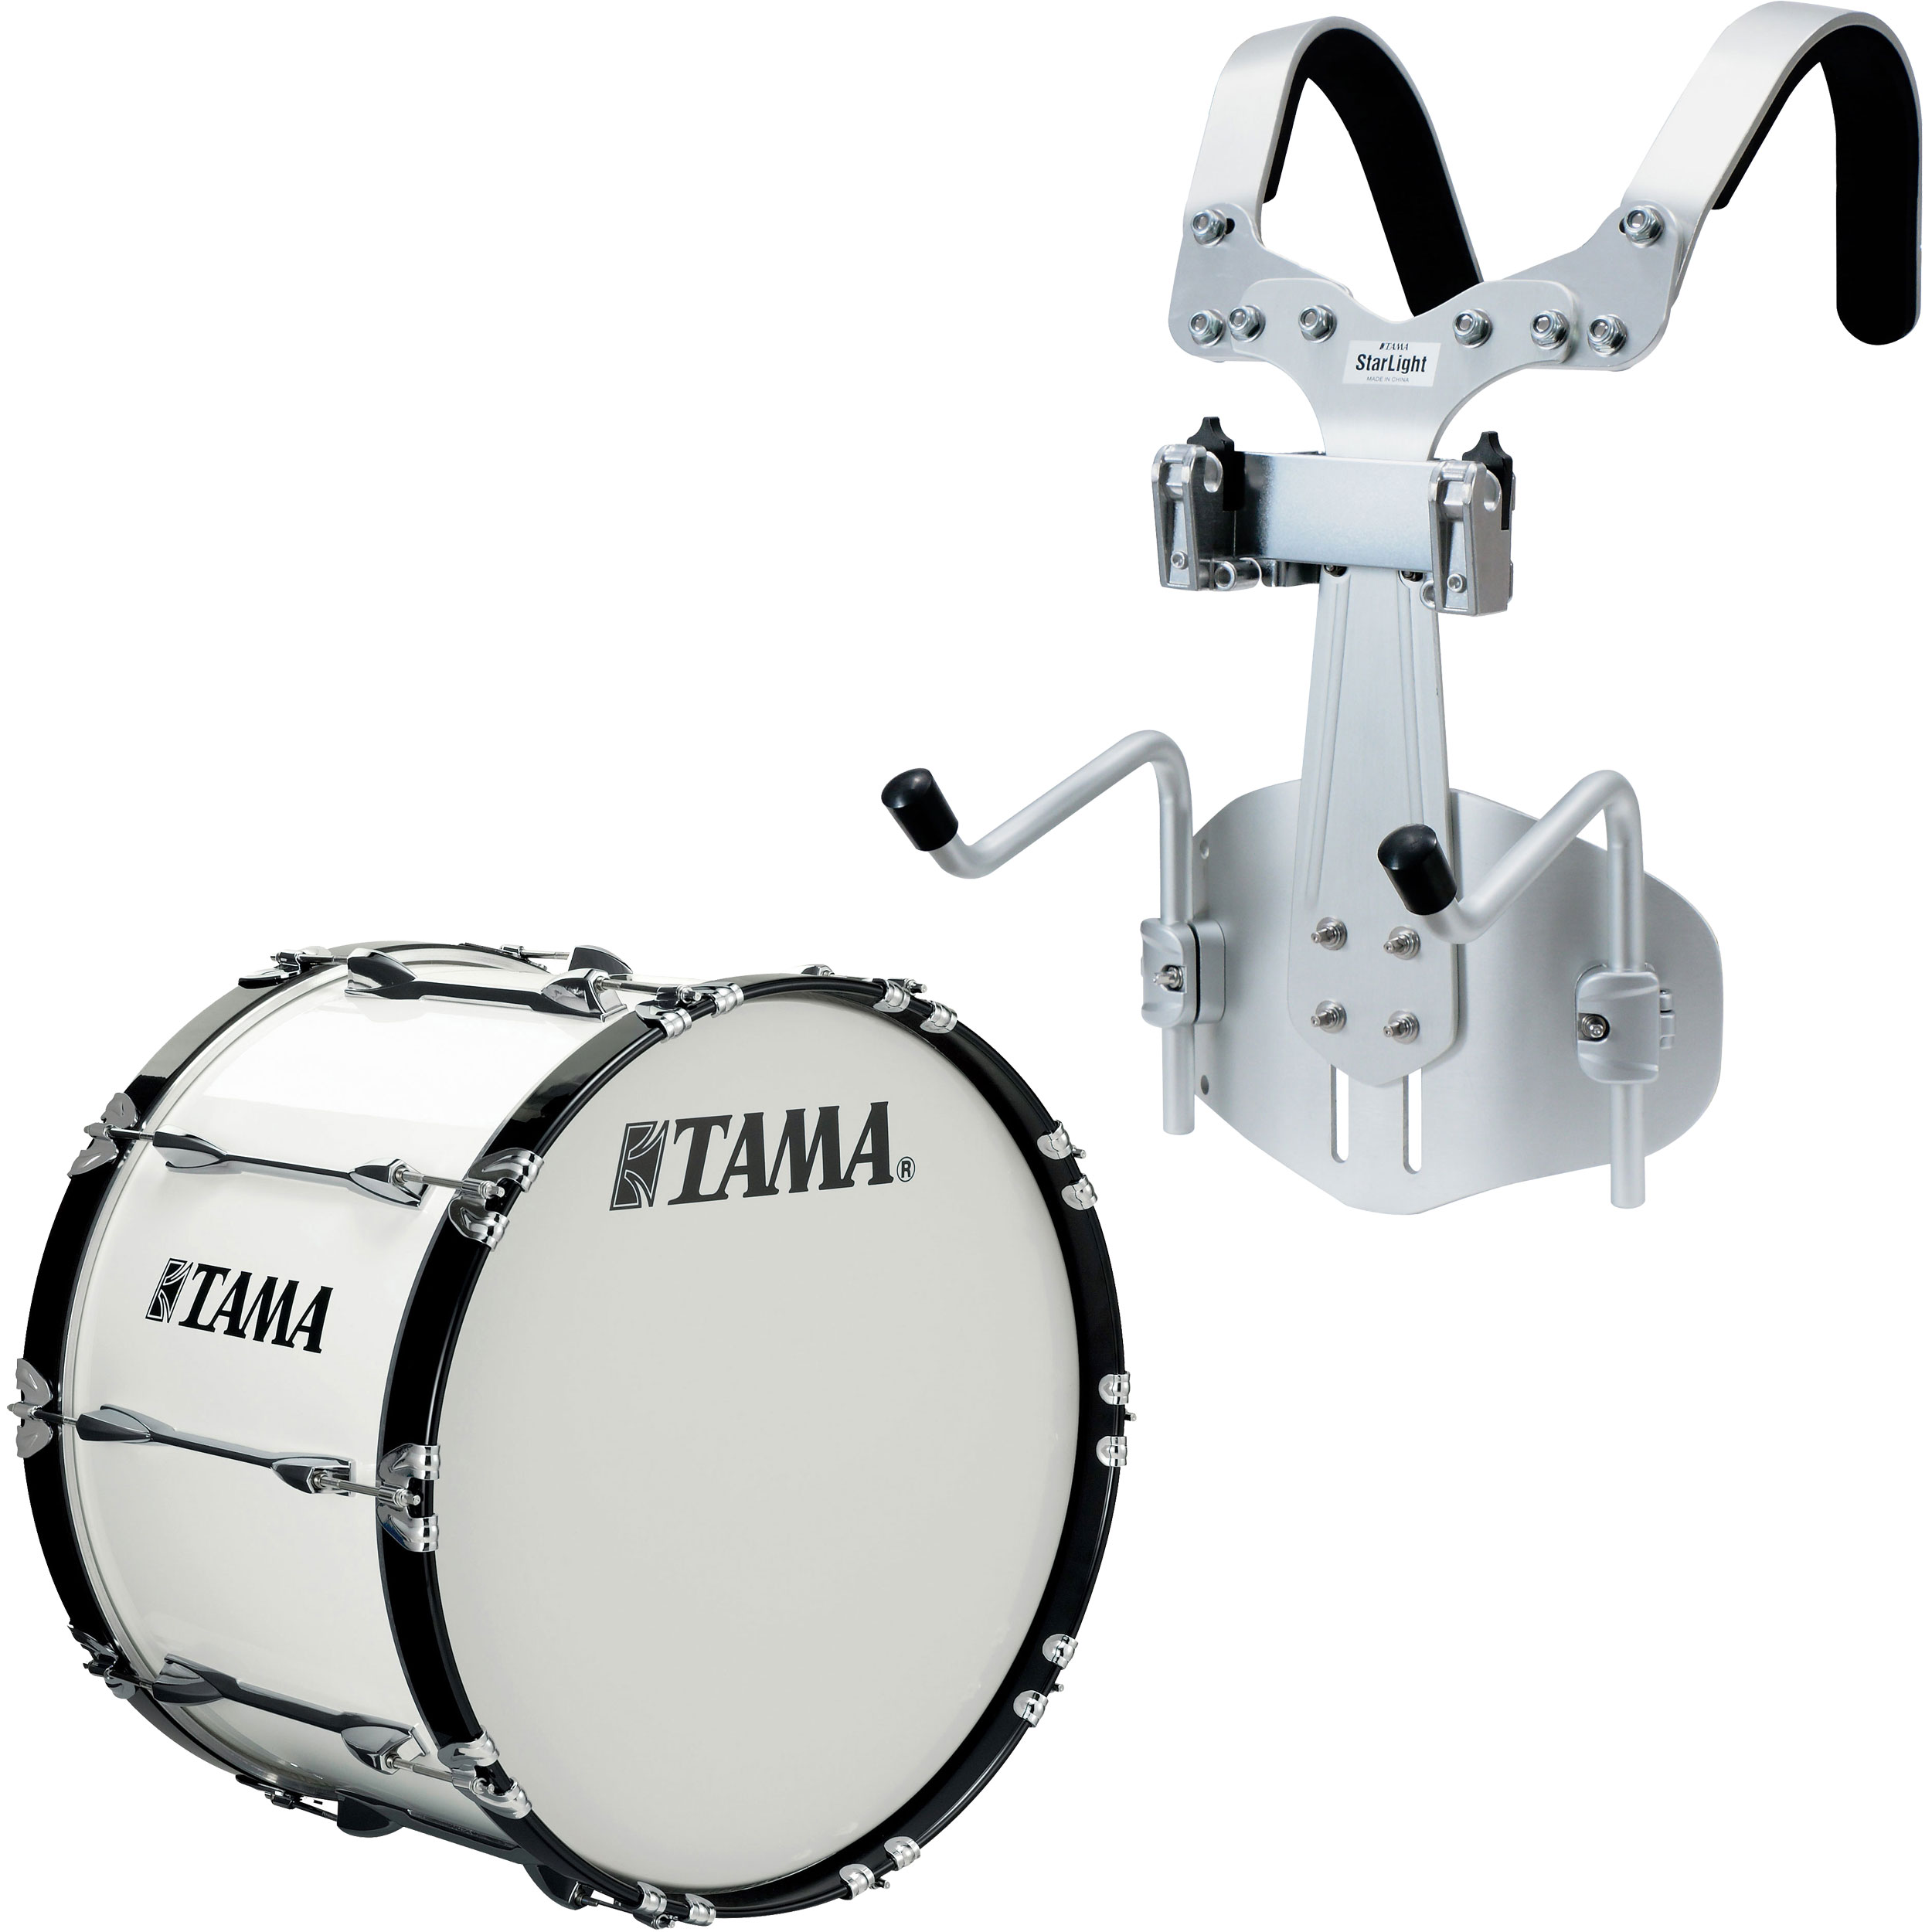 "Tama 20"" StarLight Marching Bass Drum in Sugar White Wrap with Carrier"